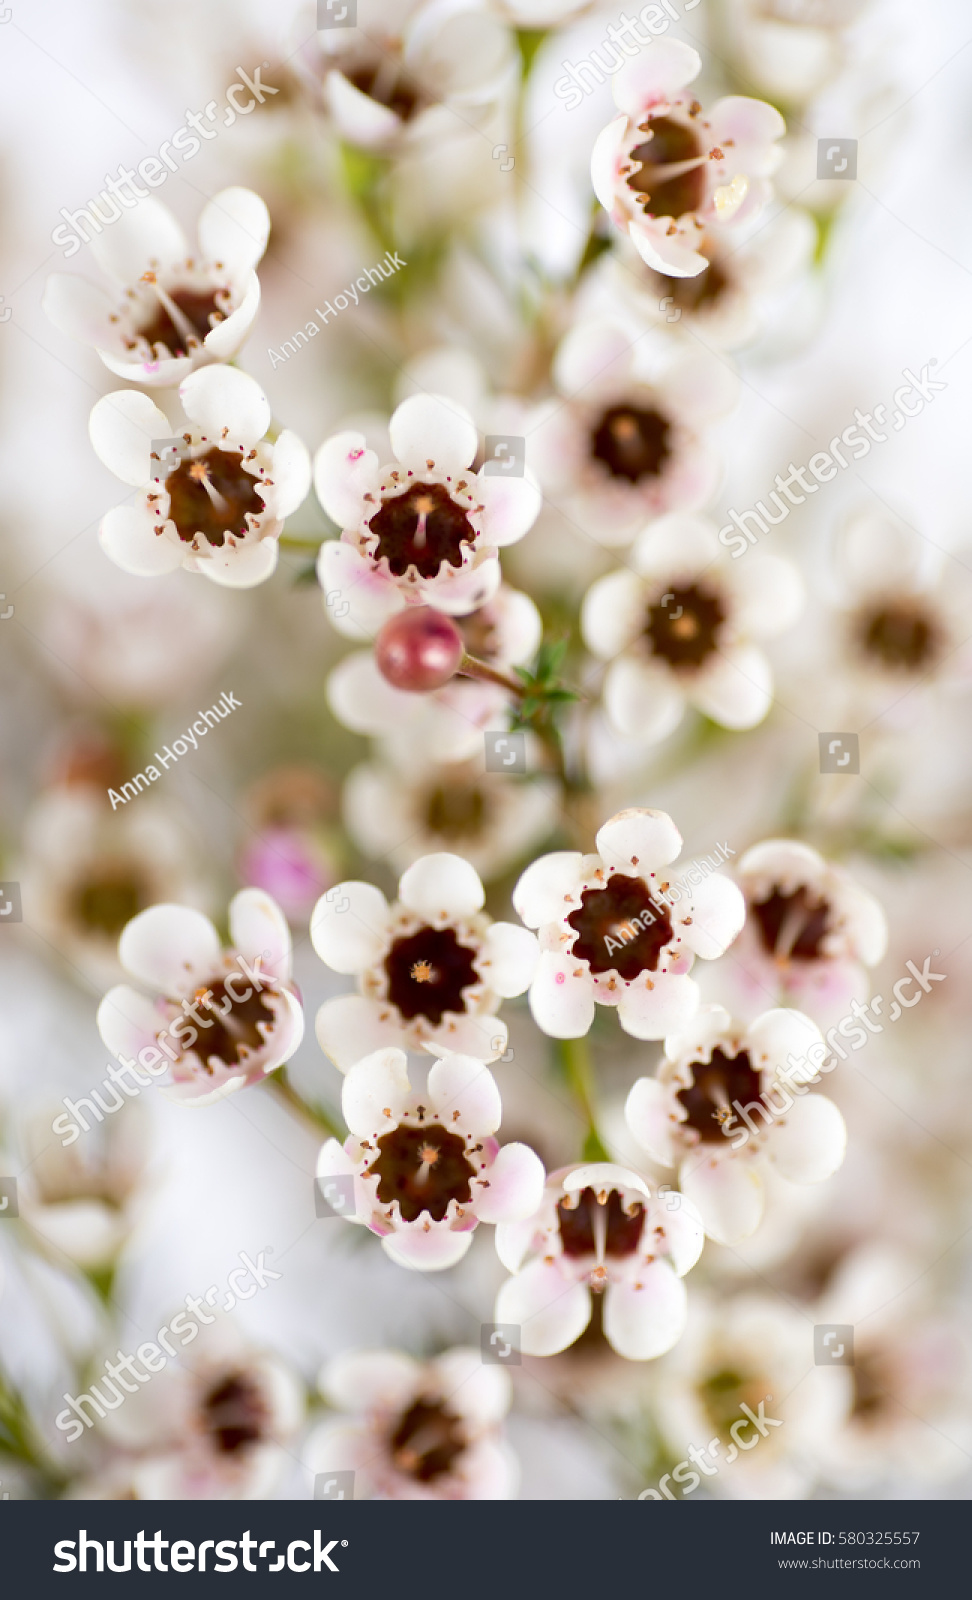 Bouquet White Wax Flowers Stock Photo Edit Now 580325557